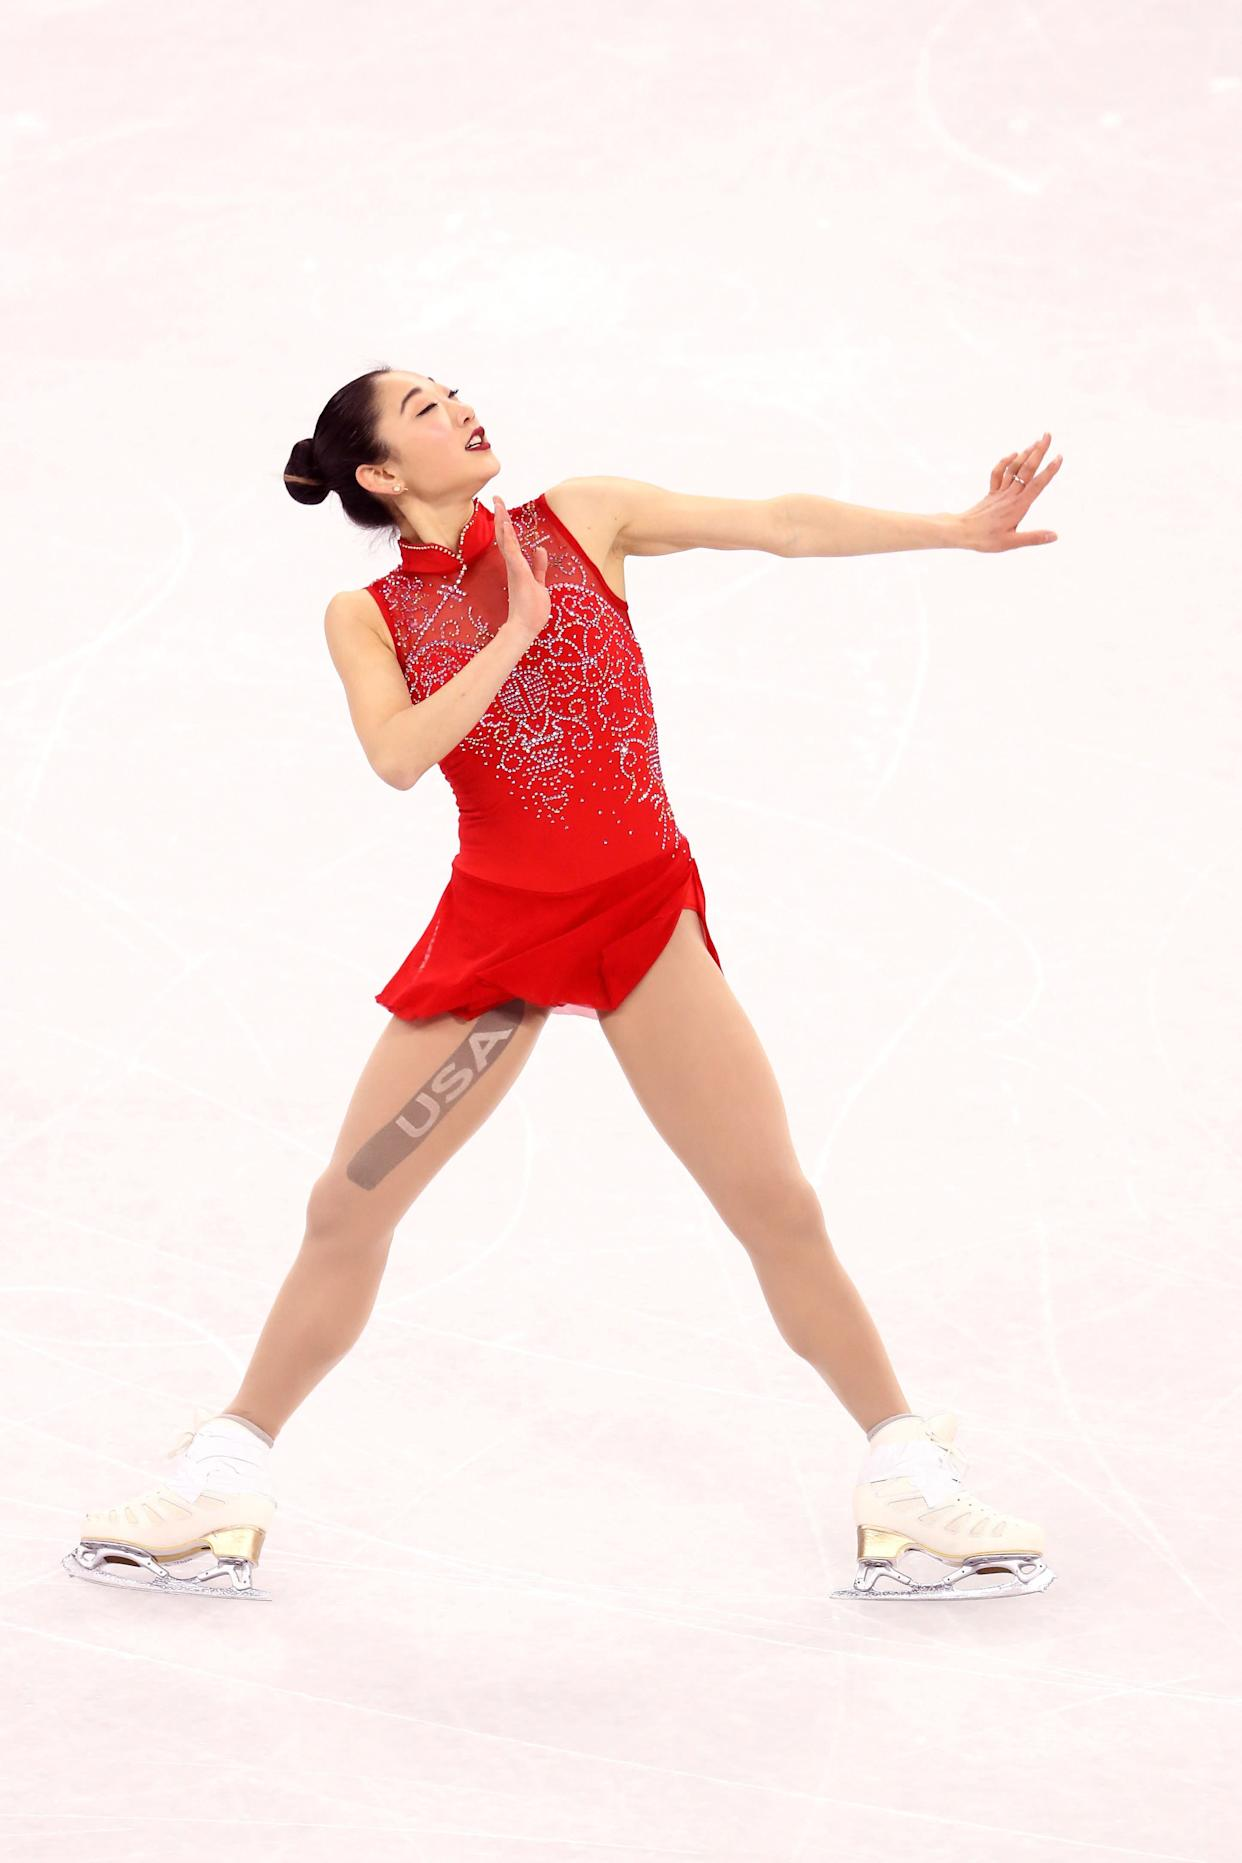 """Nagasu, of the U.S., wore this costume for her free skate in the&nbsp;women's single event, and earlier at&nbsp;the team event, where she became the <a href=""""https://www.huffingtonpost.com/entry/mirai-nagasu-triple-axel-olympics_us_5a8102d8e4b0c6726e14b9e4"""" rel=""""nofollow noopener"""" target=""""_blank"""" data-ylk=""""slk:first American woman to land a triple axel at the Olympics"""" class=""""link rapid-noclick-resp"""">first American woman to land a triple axel at the Olympics</a>. Because of that, this bold red ensemble seems destined to become one of the sport's most iconic."""